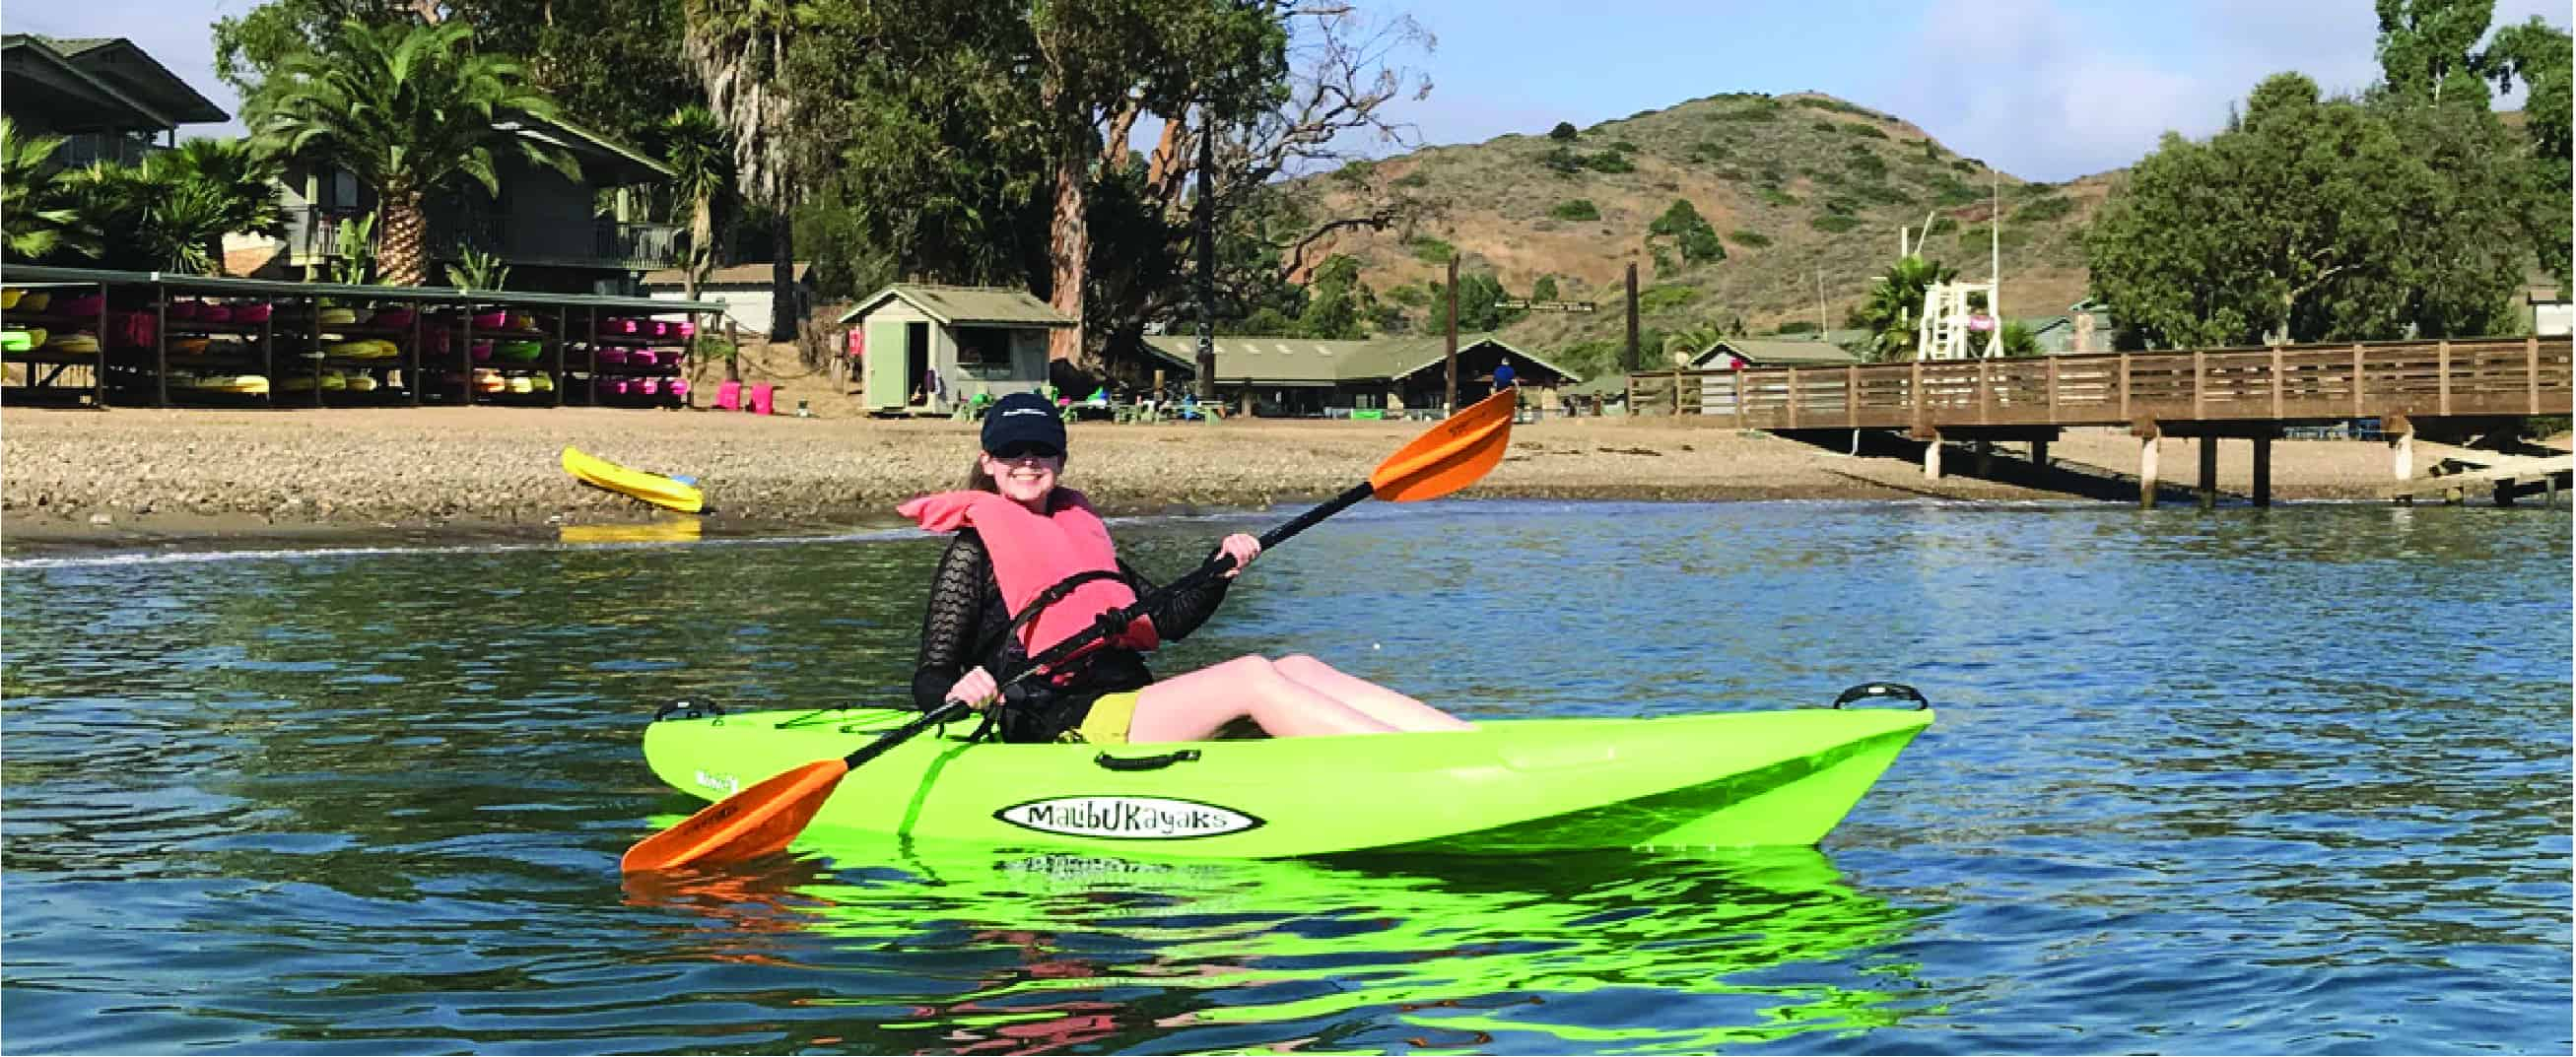 Diabetes Camp for Adults – SoCal Slipstream Through Libby's Eyes